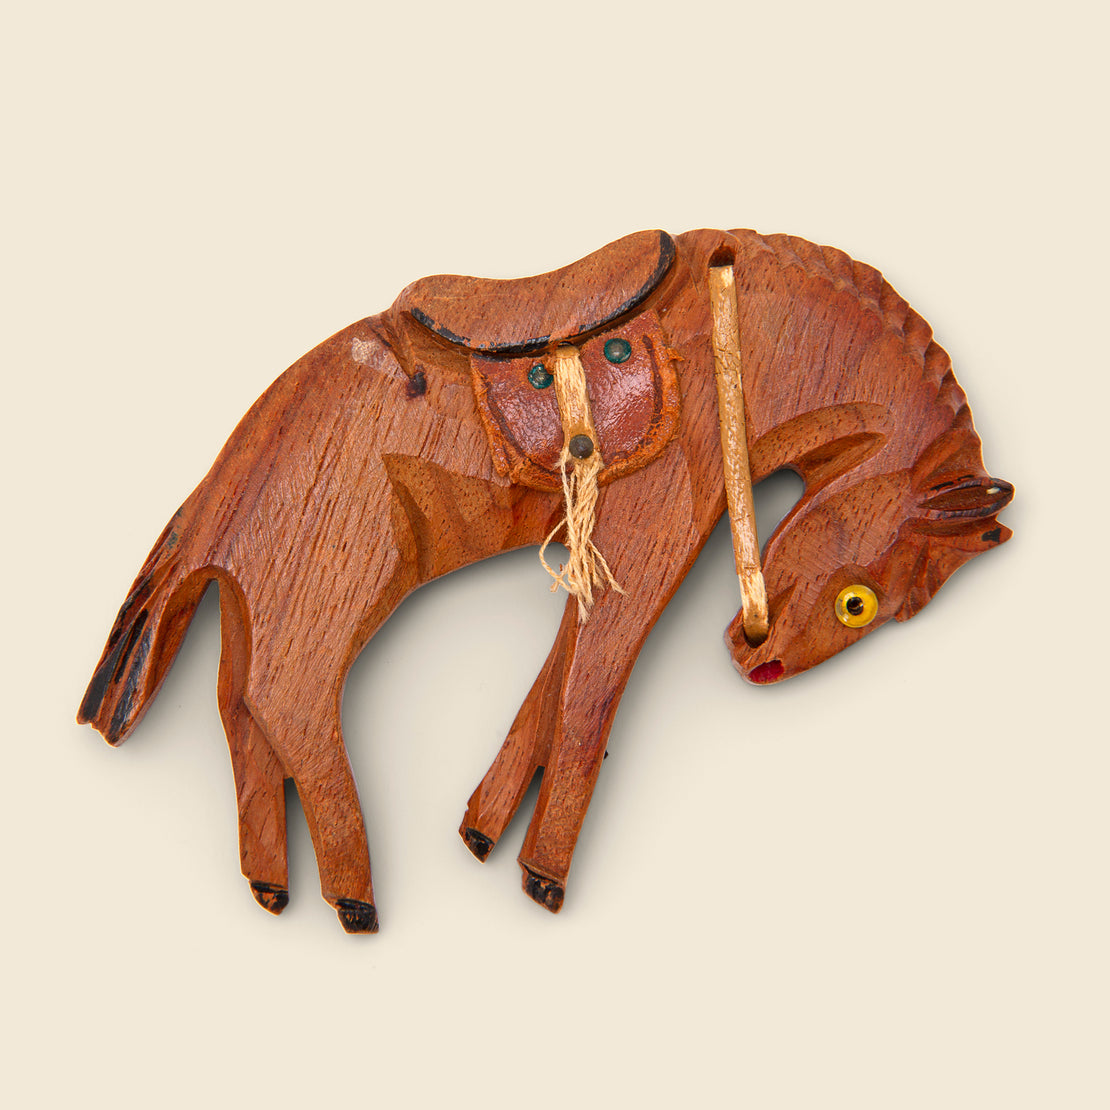 Vintage Wooden Bucking Bronco Brooch - Wood/Leather